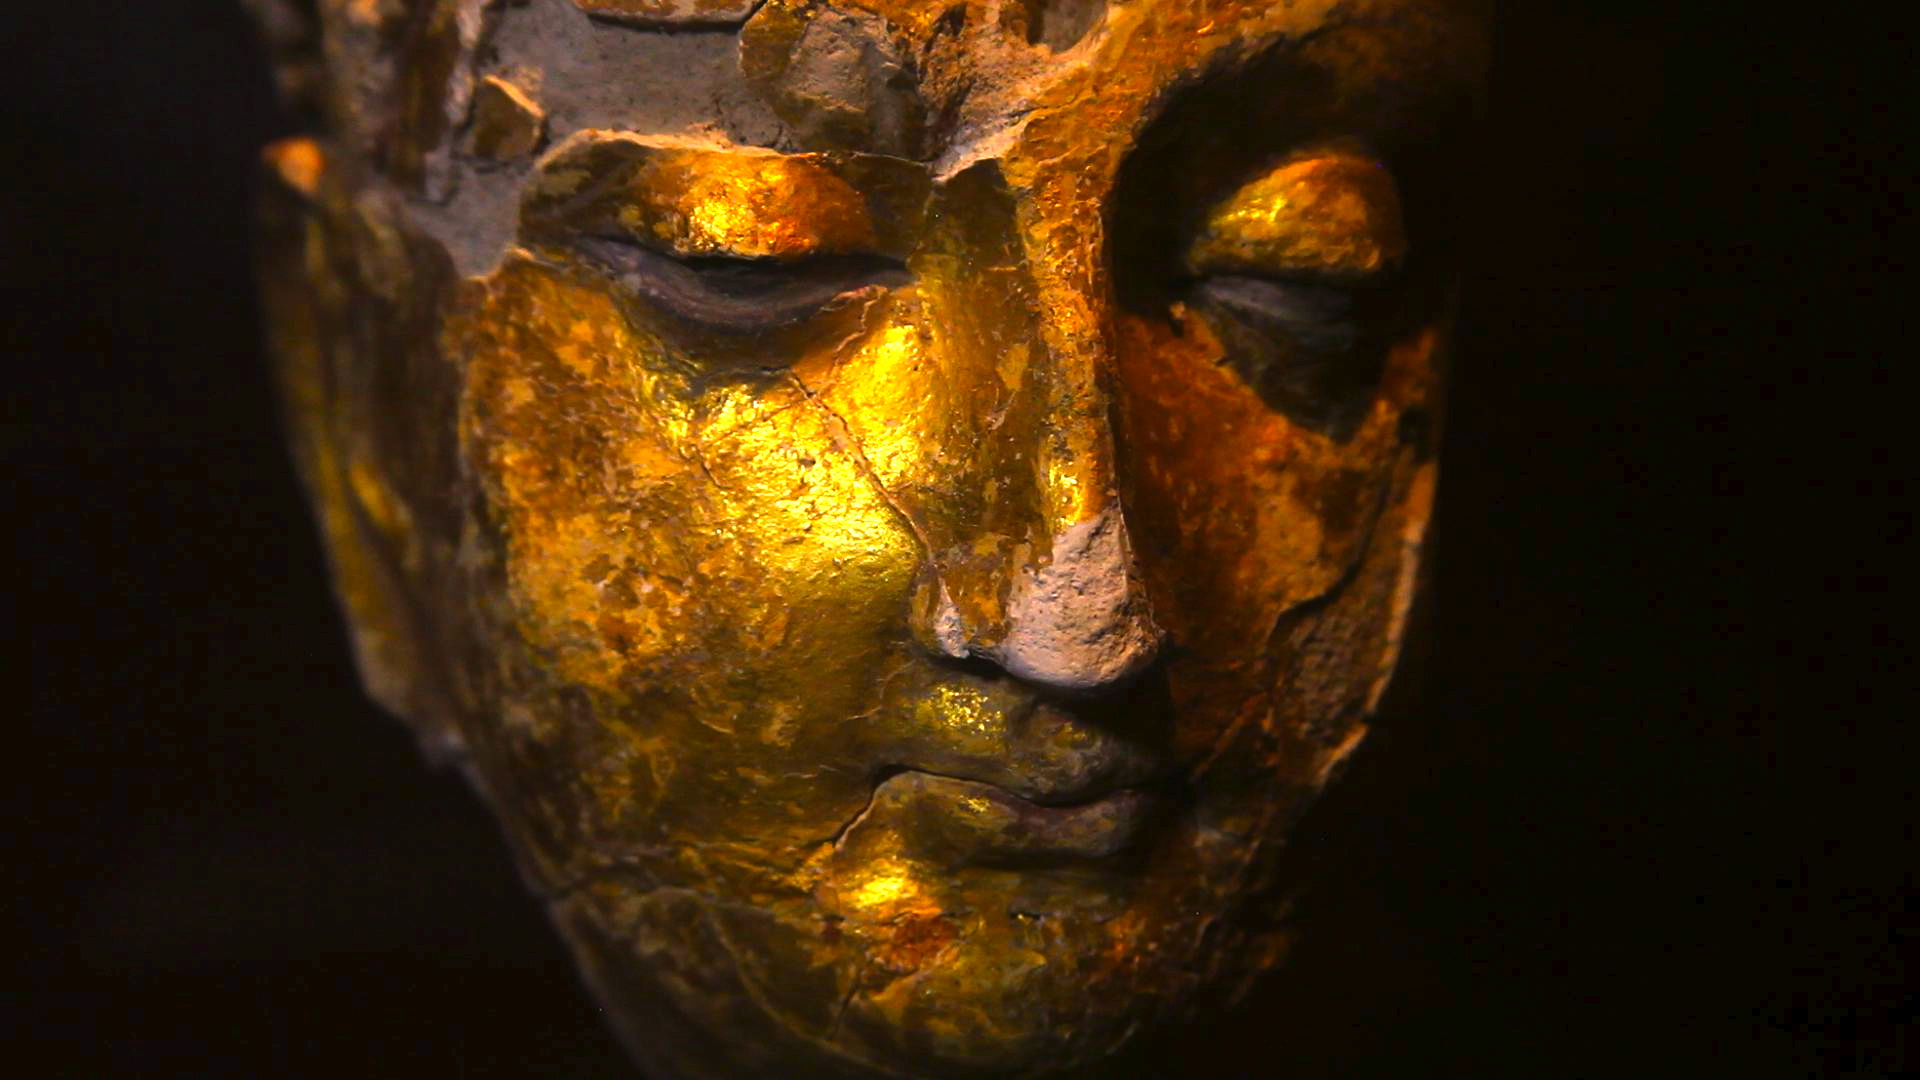 One of the most fascinating and beautiful pieces discovered at Mes Aynak: a gold-gilded Buddha statue from the 9th century.